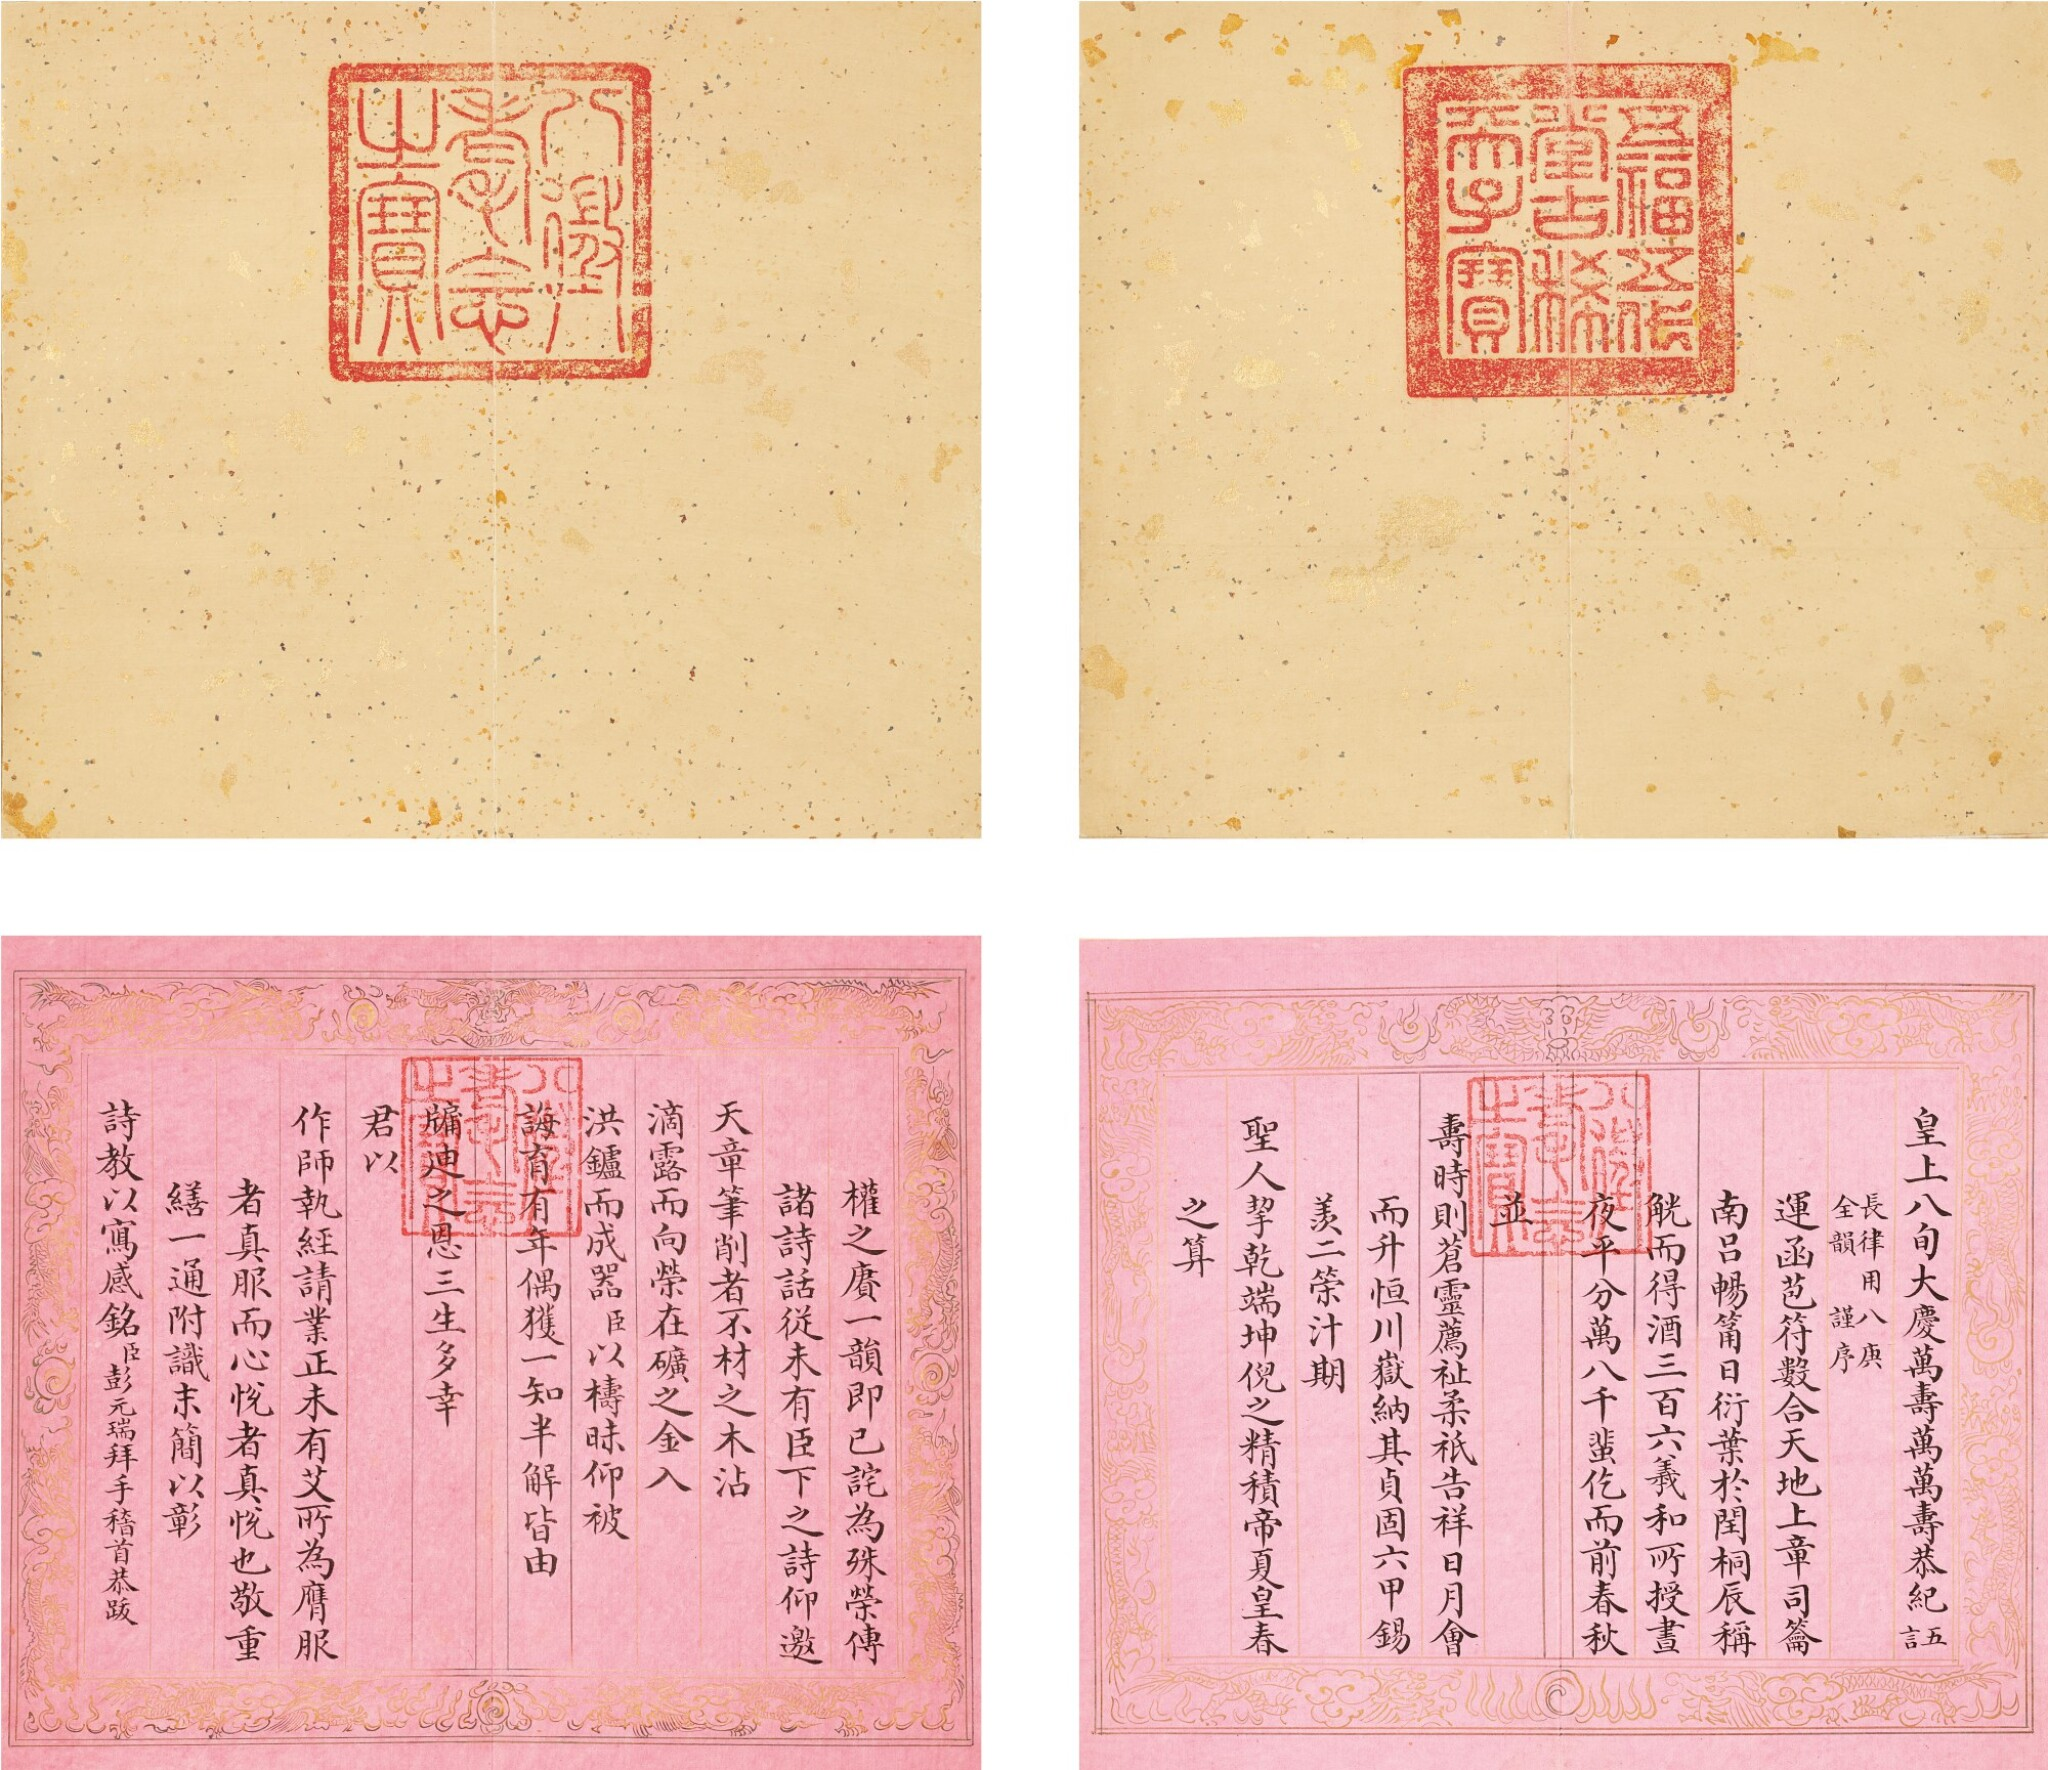 View full screen - View 1 of Lot 3114. Peng Yuanrui 1731 - 1803 彭元瑞 1731-1803 | Poems for the Emperor Qianlong's Eightieth Birthday Celebration 《萬壽大慶八庚全韻詩》冊.